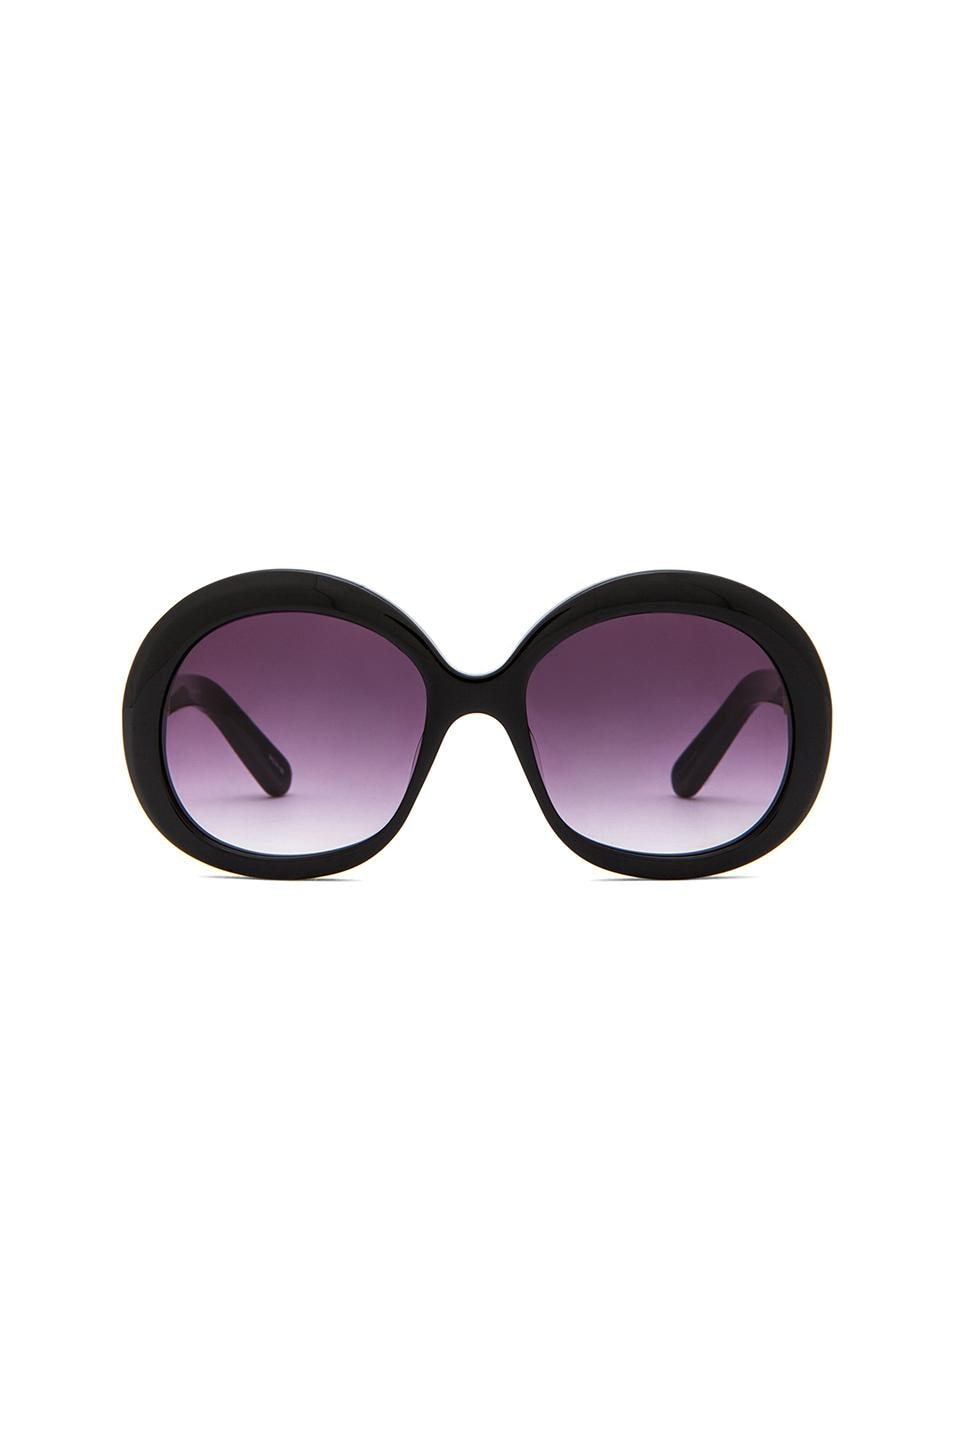 Elizabeth and James River Sunglasses in Black